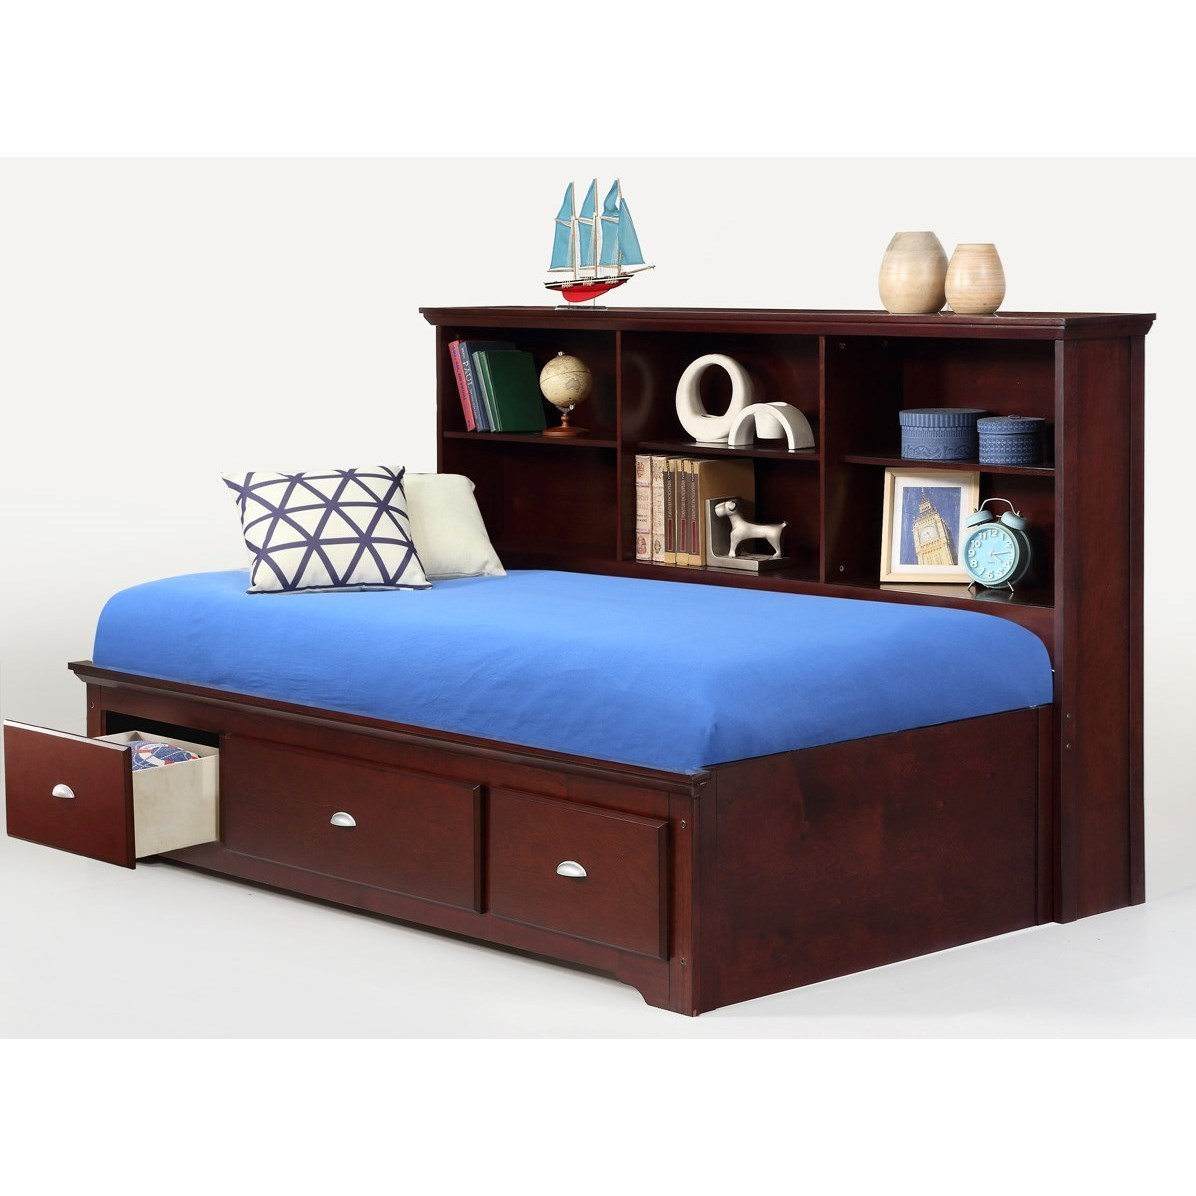 Bernards Ethan Twin Lounge Bed With Bookcase Headboard